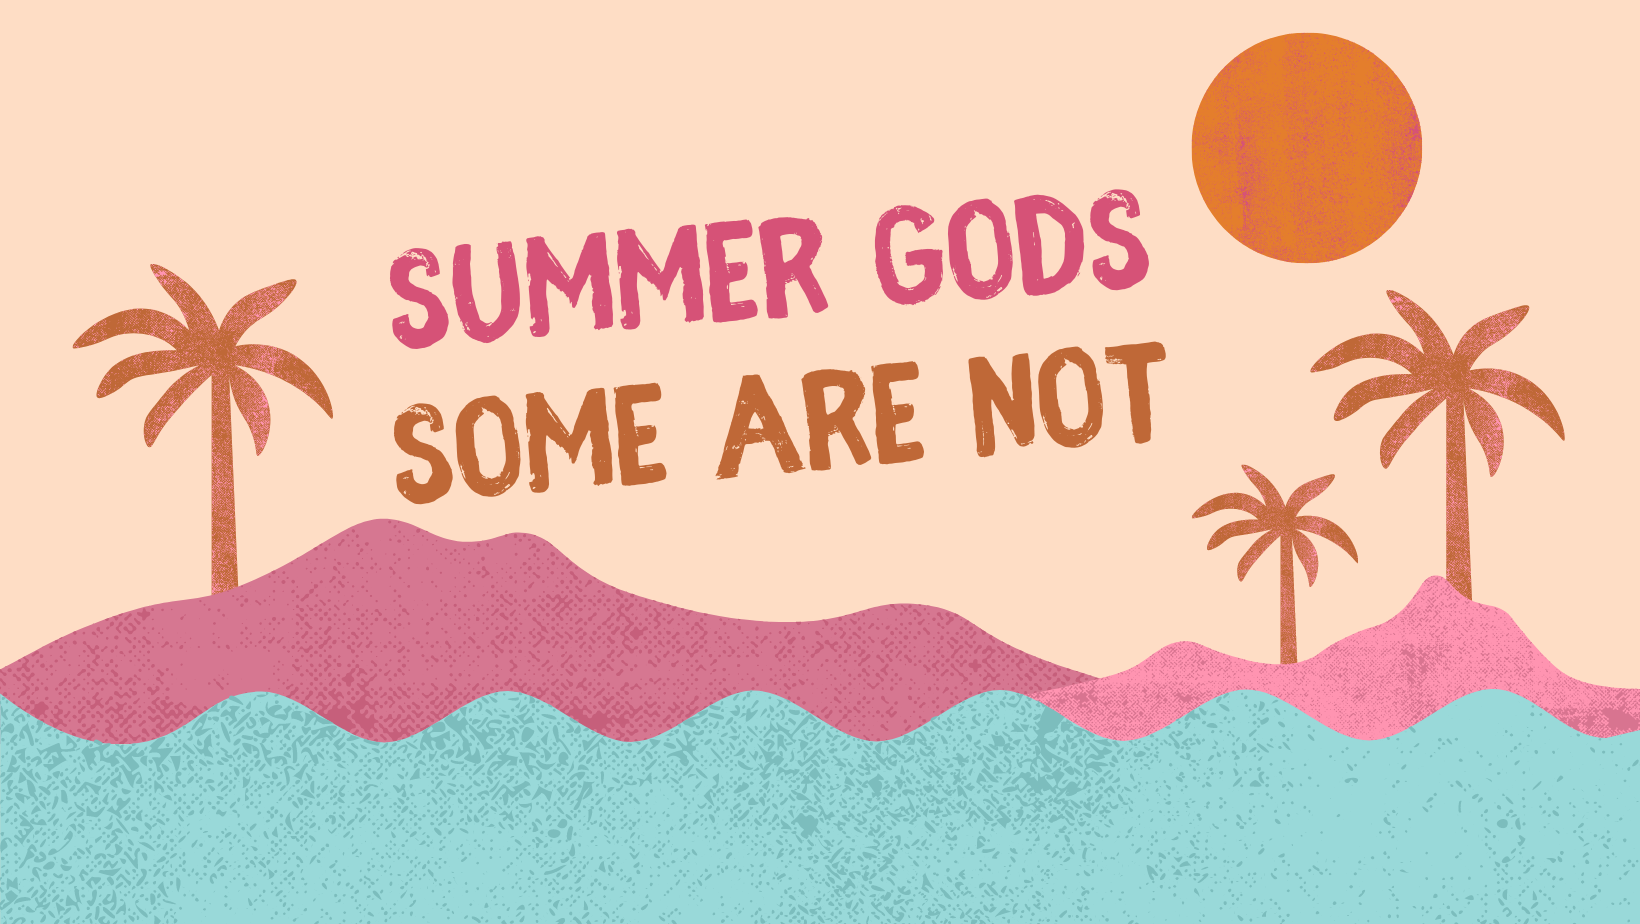 Summer Gods Some are Not